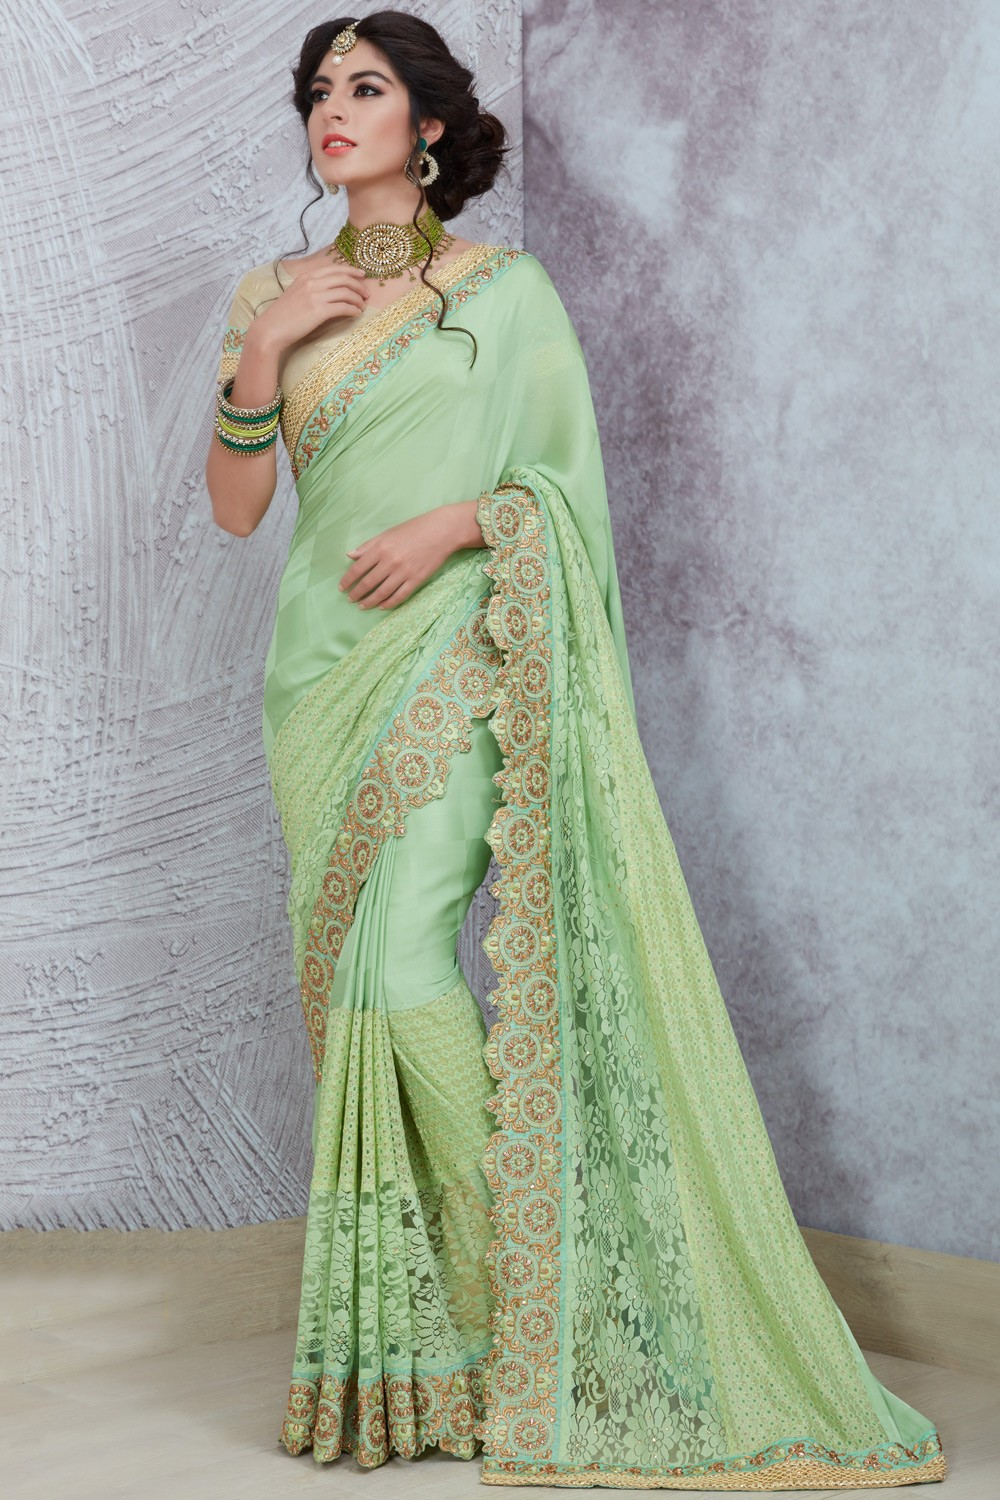 09b614f724 Paaneri Designer Half & Half Dark Sea Green Color Thread Work Border  Georgette Printed Saree-Product Code-17119885510 - Party Wear - Sarees -  Women's